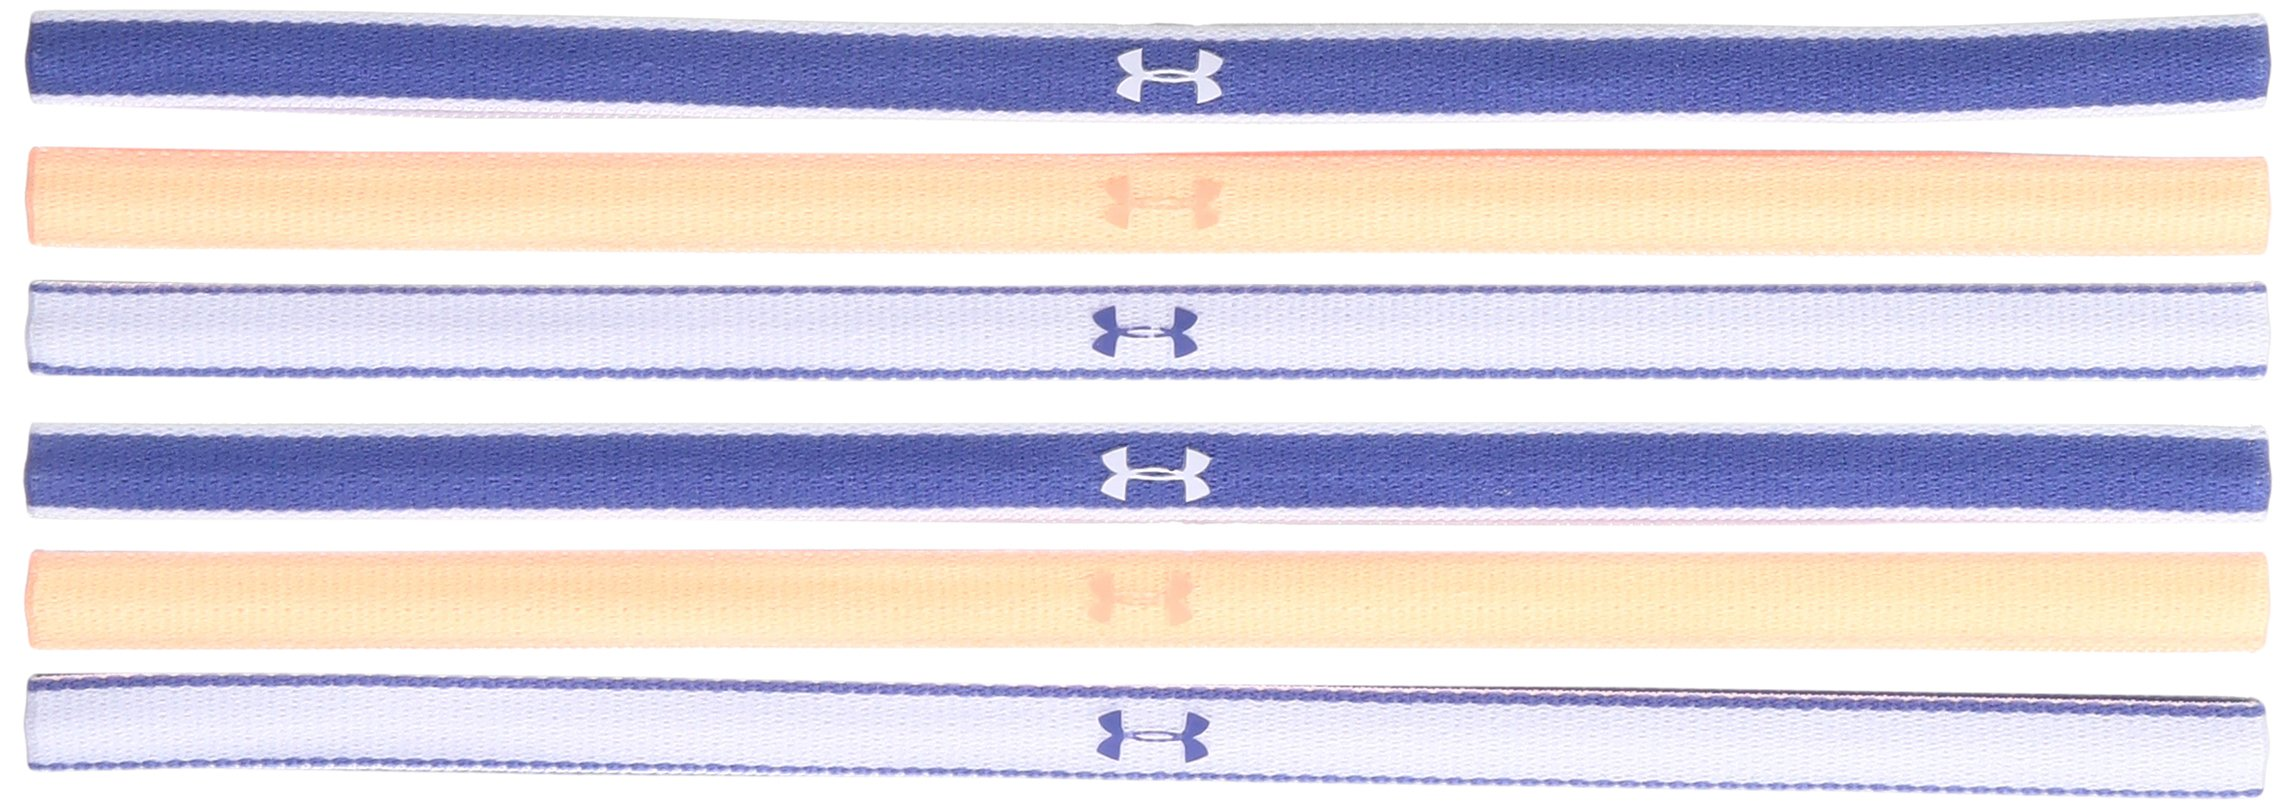 Under Armour Girls Mini Headbands - 6 Pack ,Deep Periwinkle (178)/White, One Size